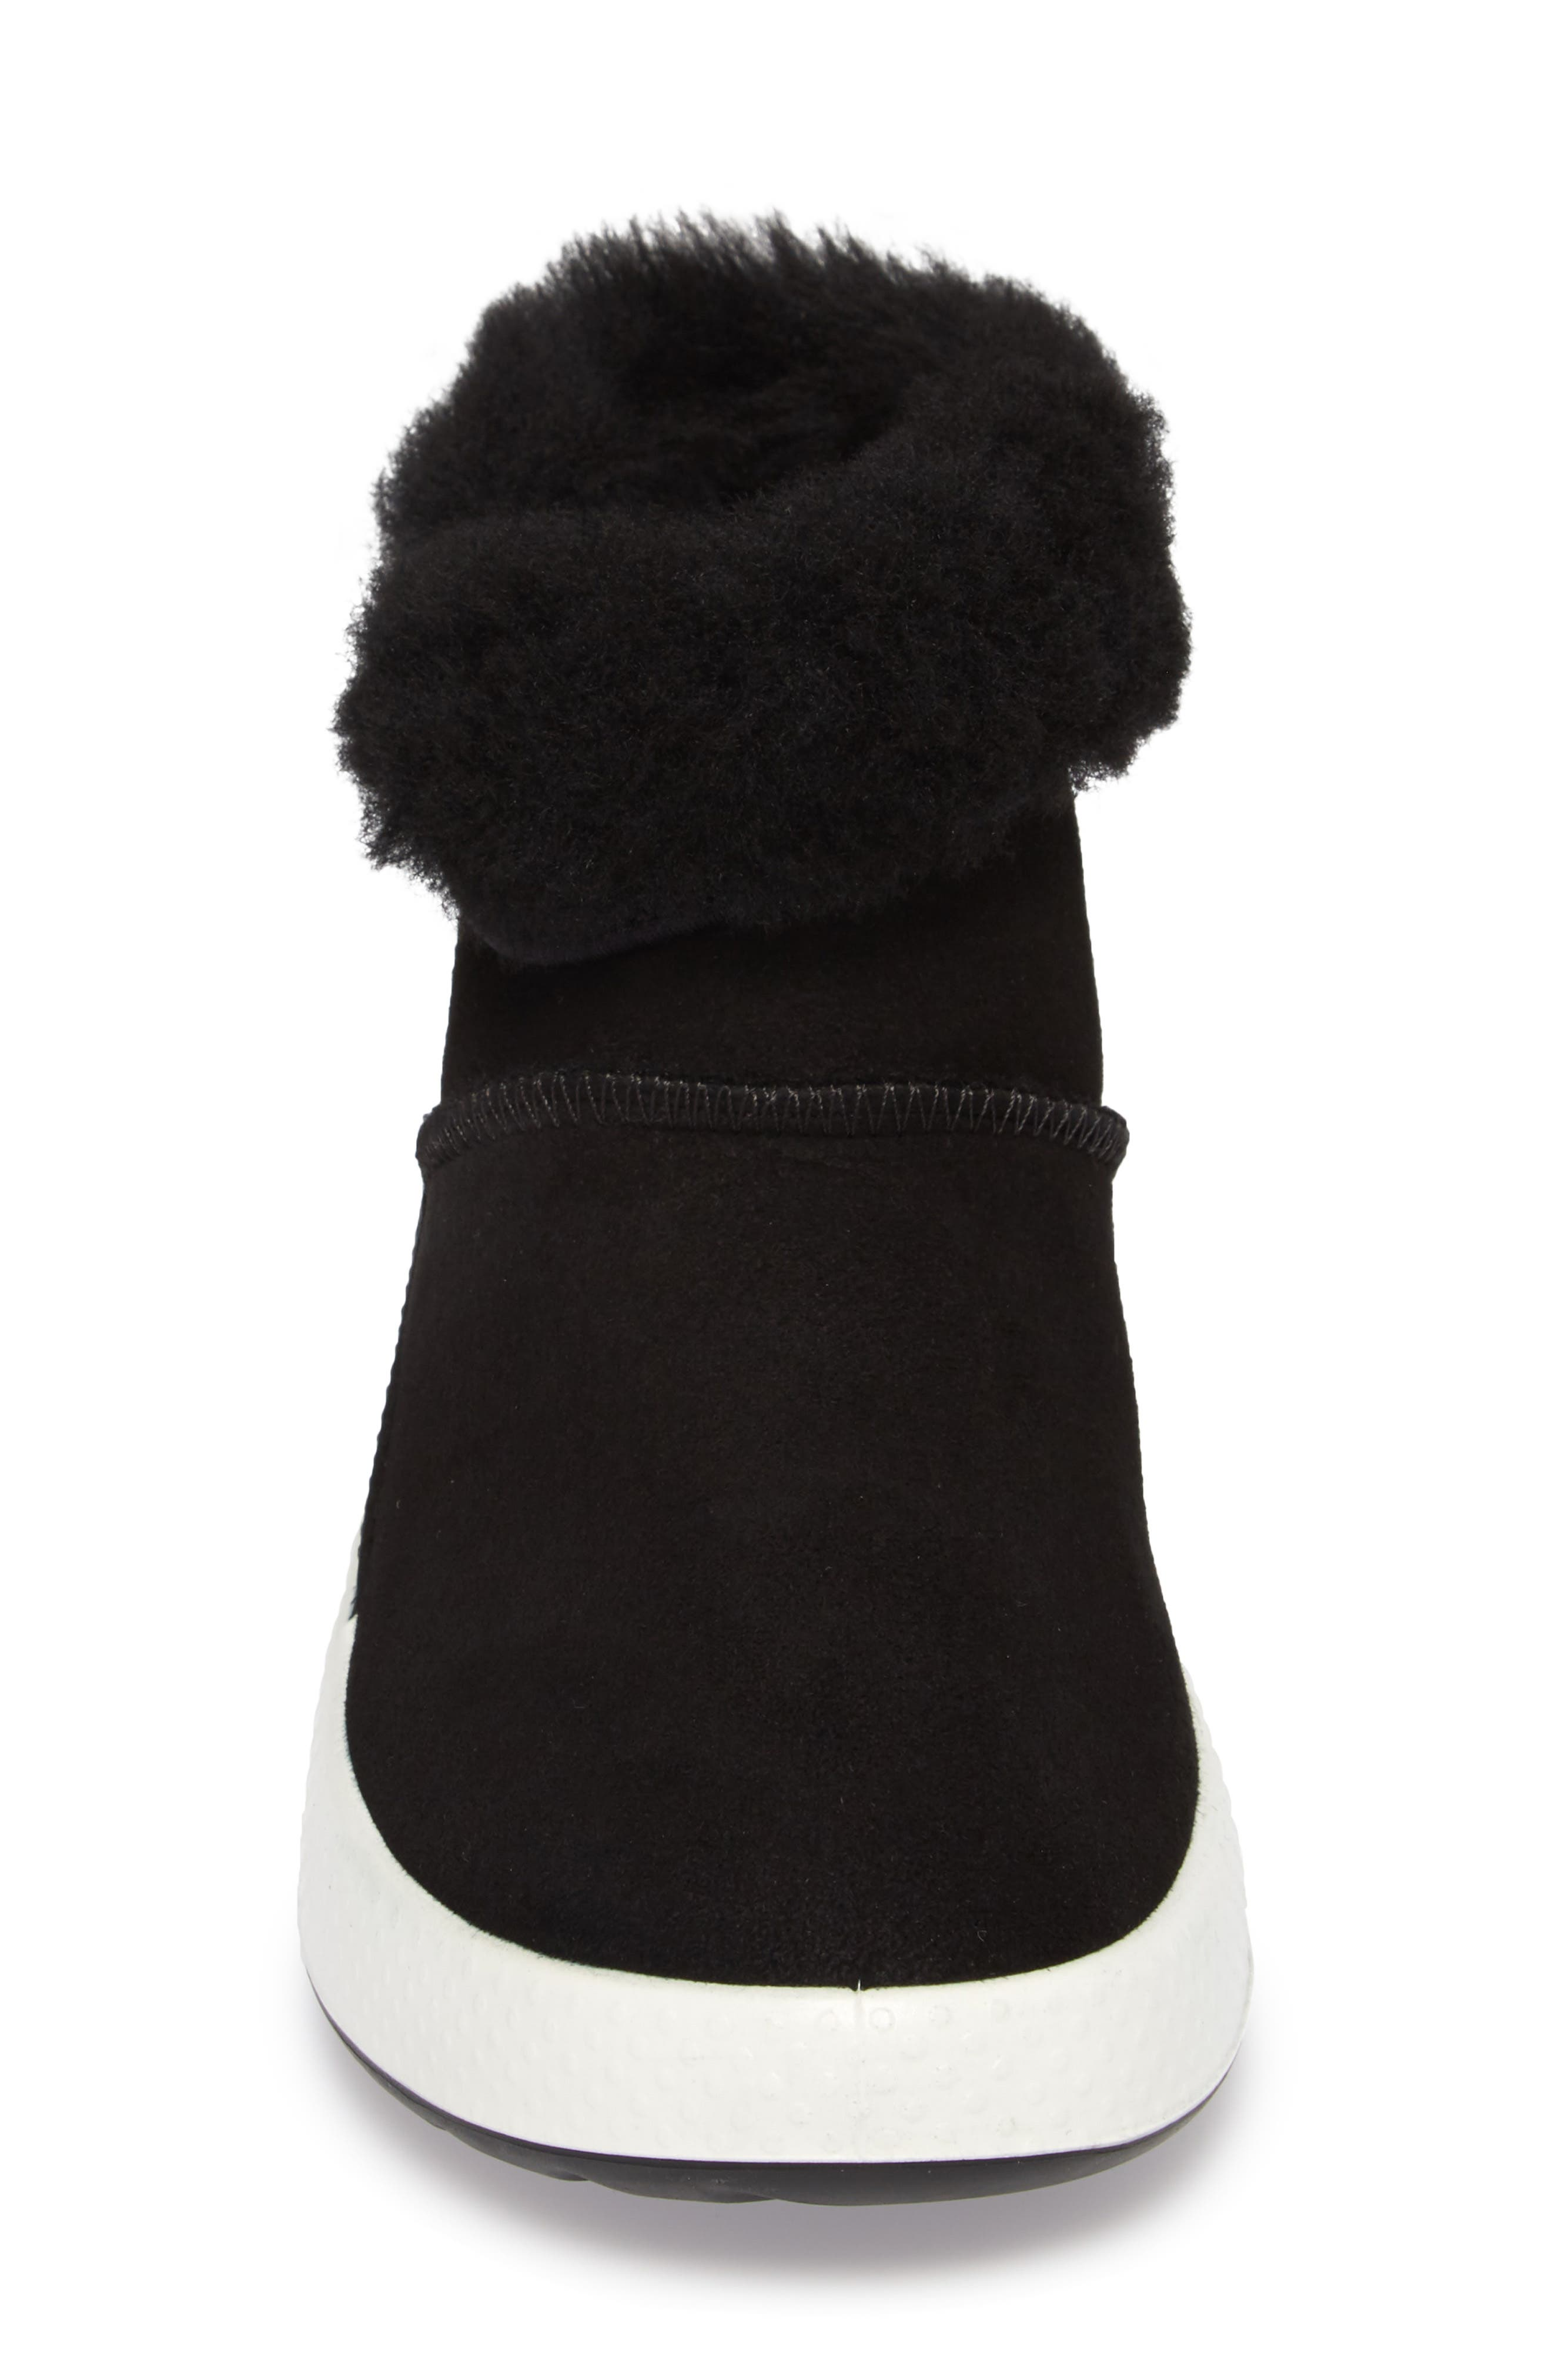 Ukiuk Genuine Shearling Boot,                             Alternate thumbnail 4, color,                             001